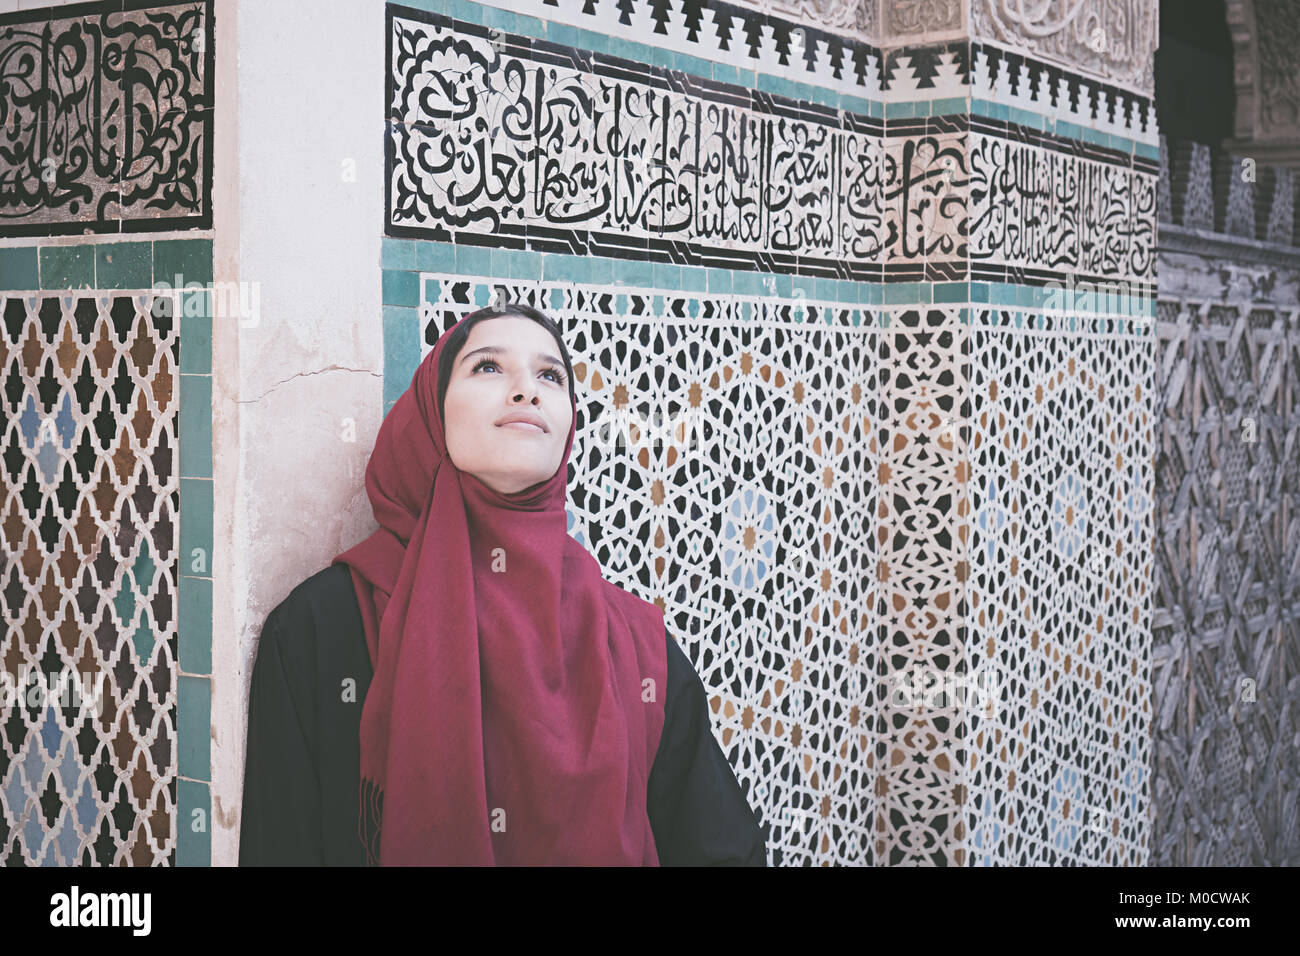 Femme arabe en costume traditionnel avec hijab rouge devant le mur avec du texte de Coran Photo Stock